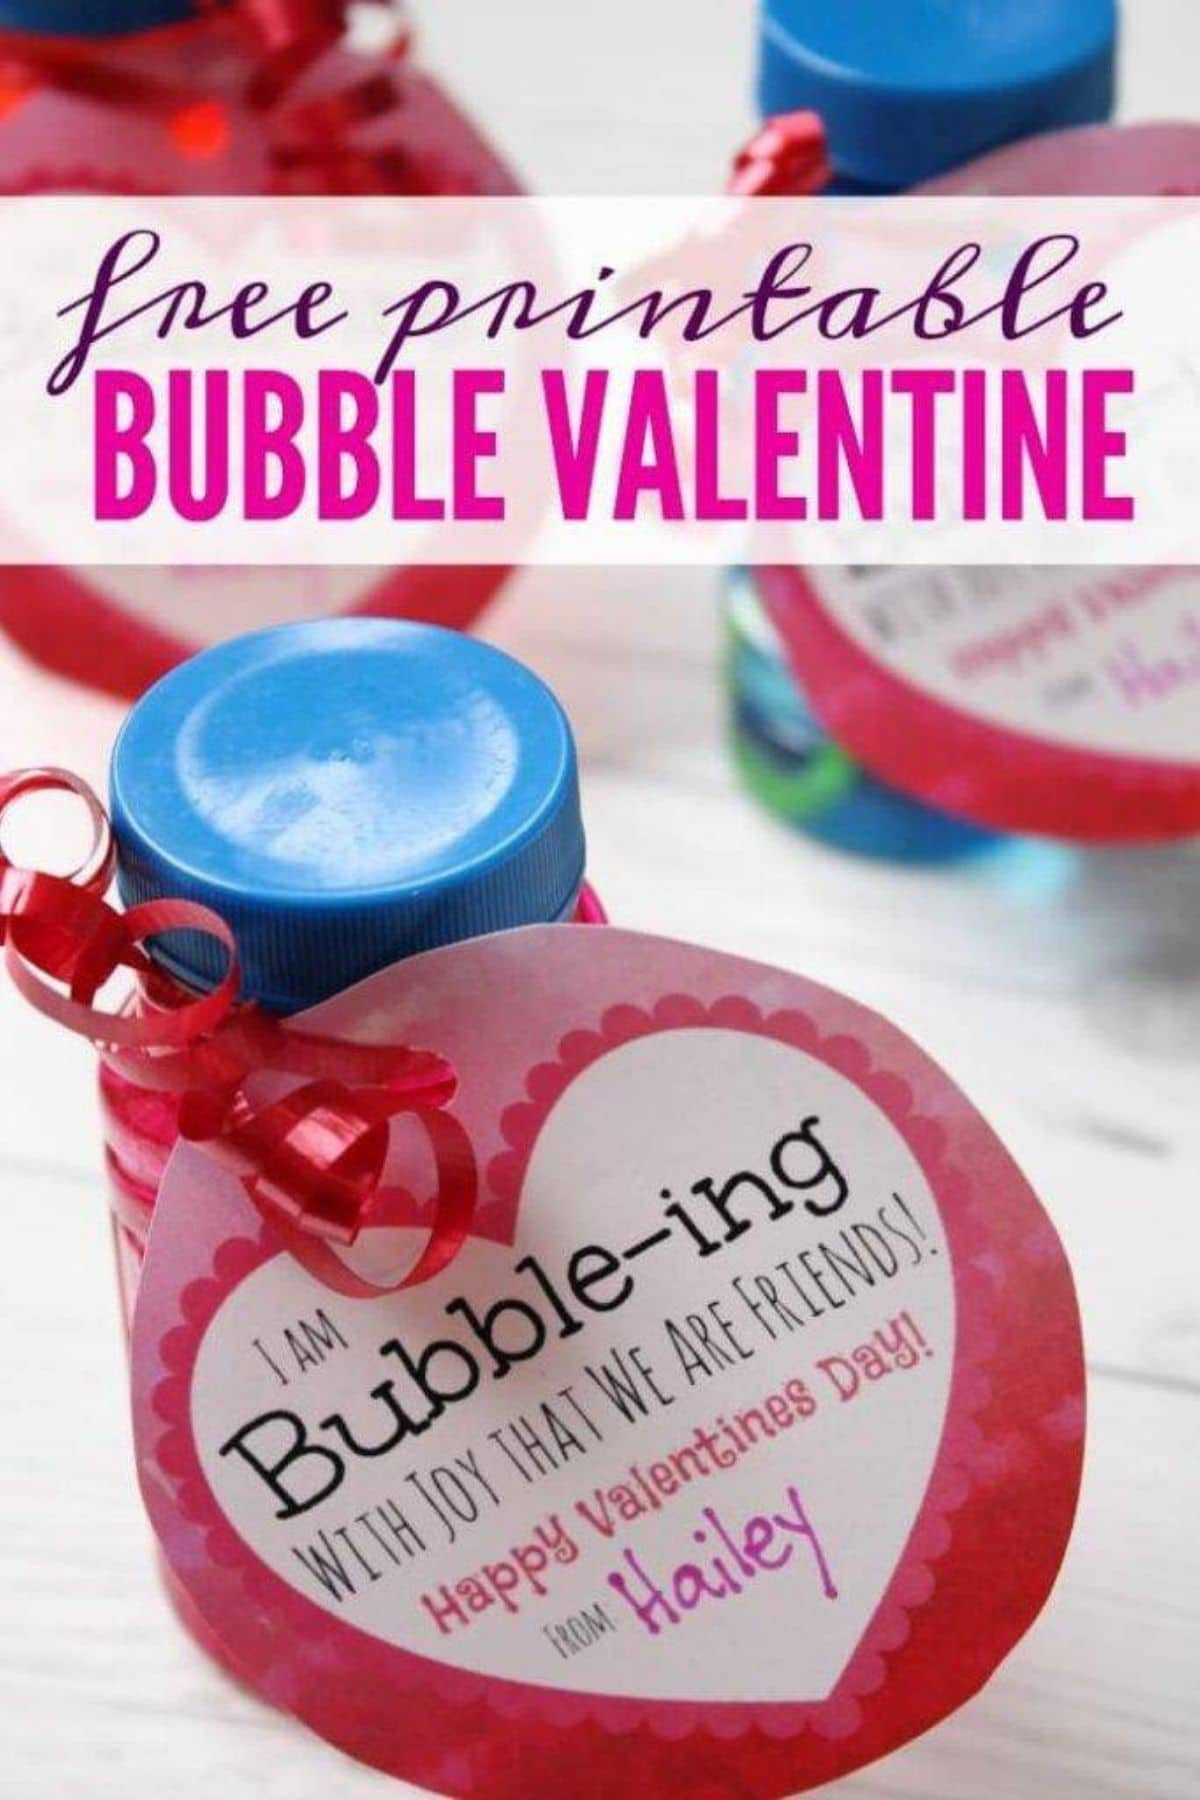 Bubble valentine